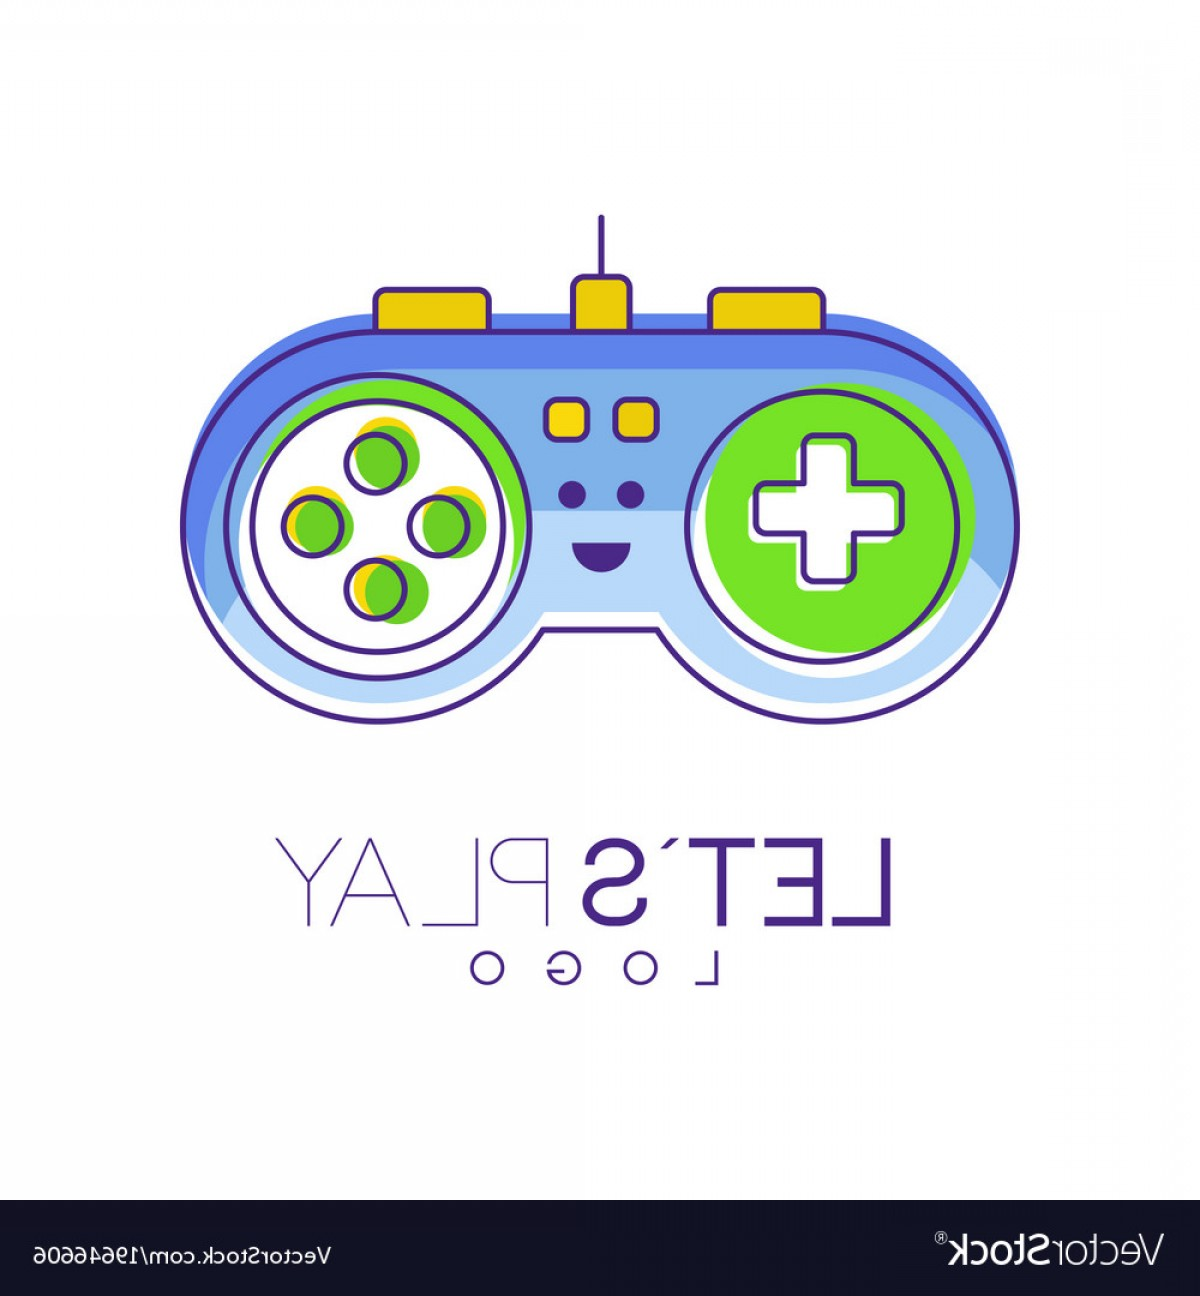 Xbox Game Controller Vector: Gamepad With Buttons To Play Gaming Controller Vector